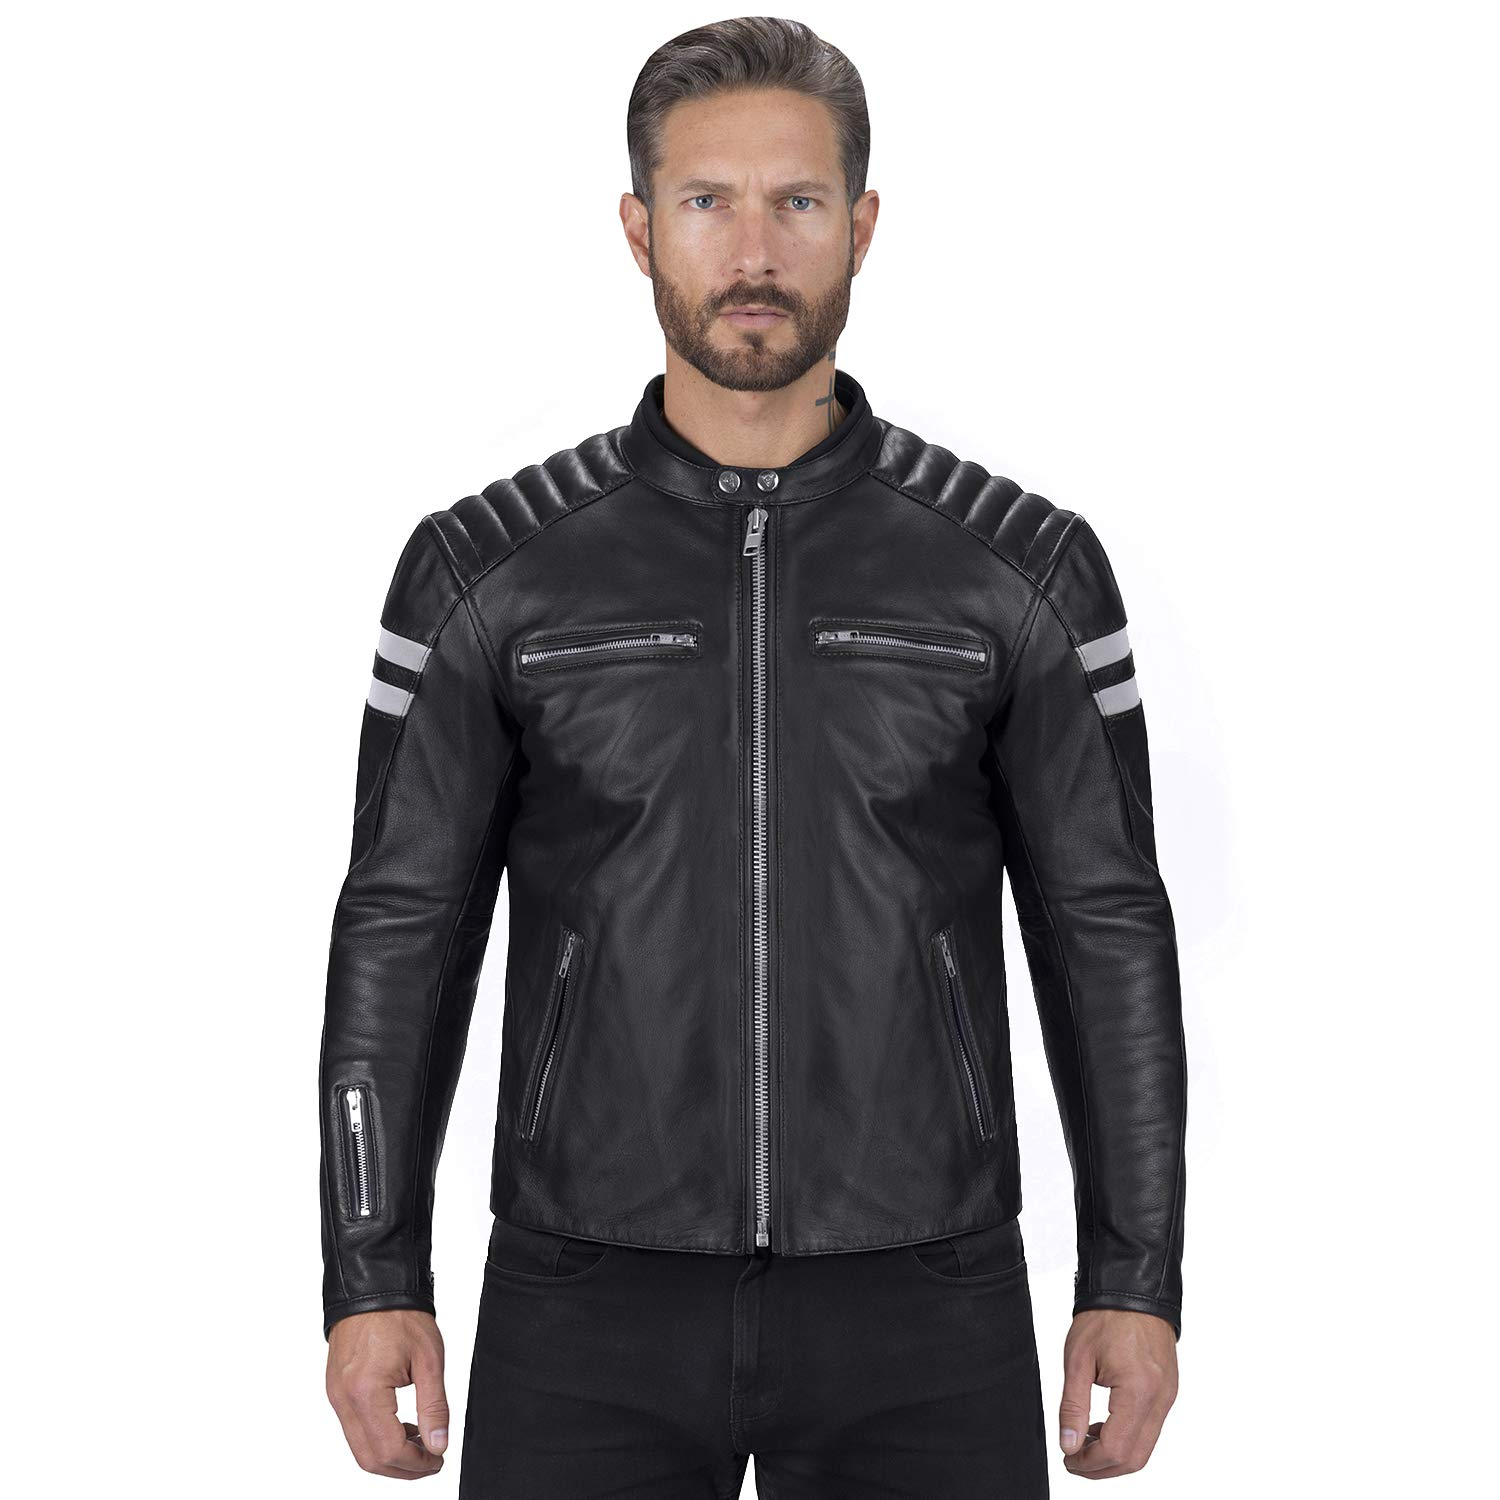 Viking Cycle Bloodaxe Leather Motorcycle Jacket for Men